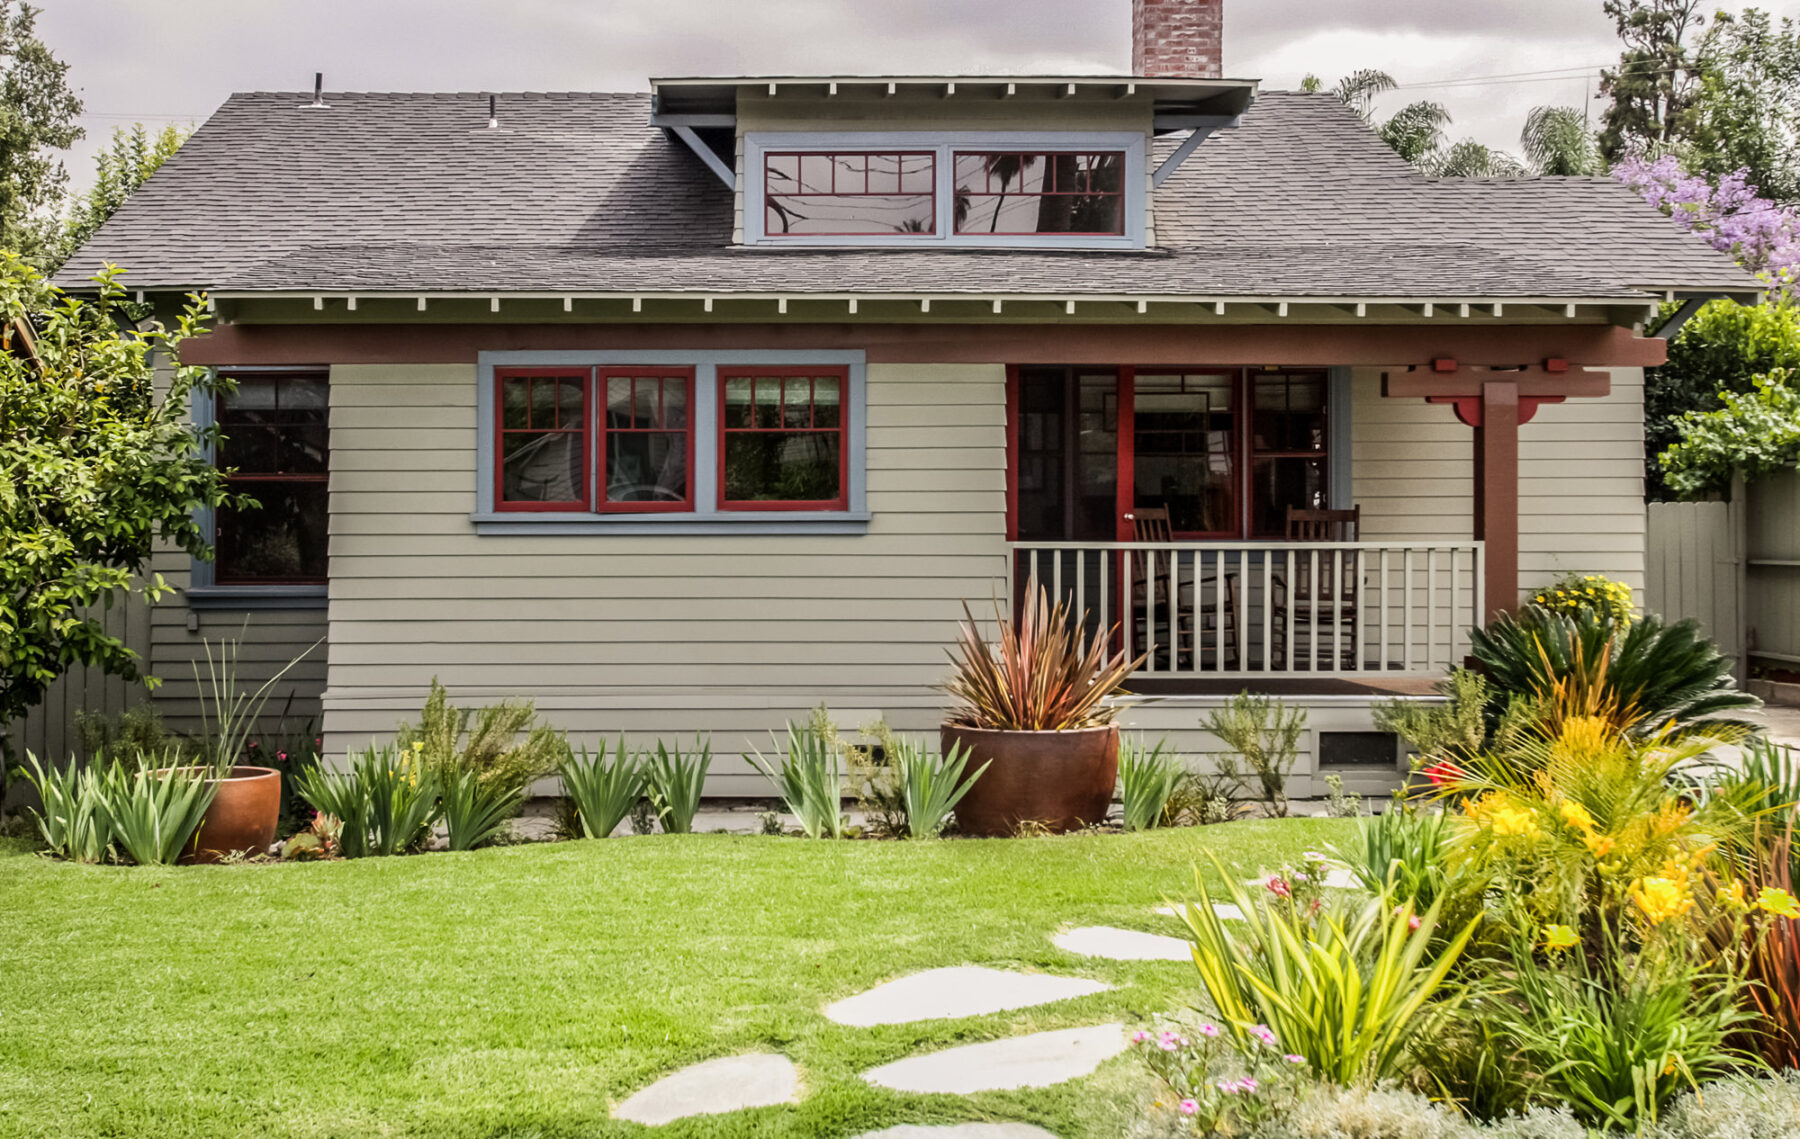 South Pasadena Craftsman Restored With Classic Details